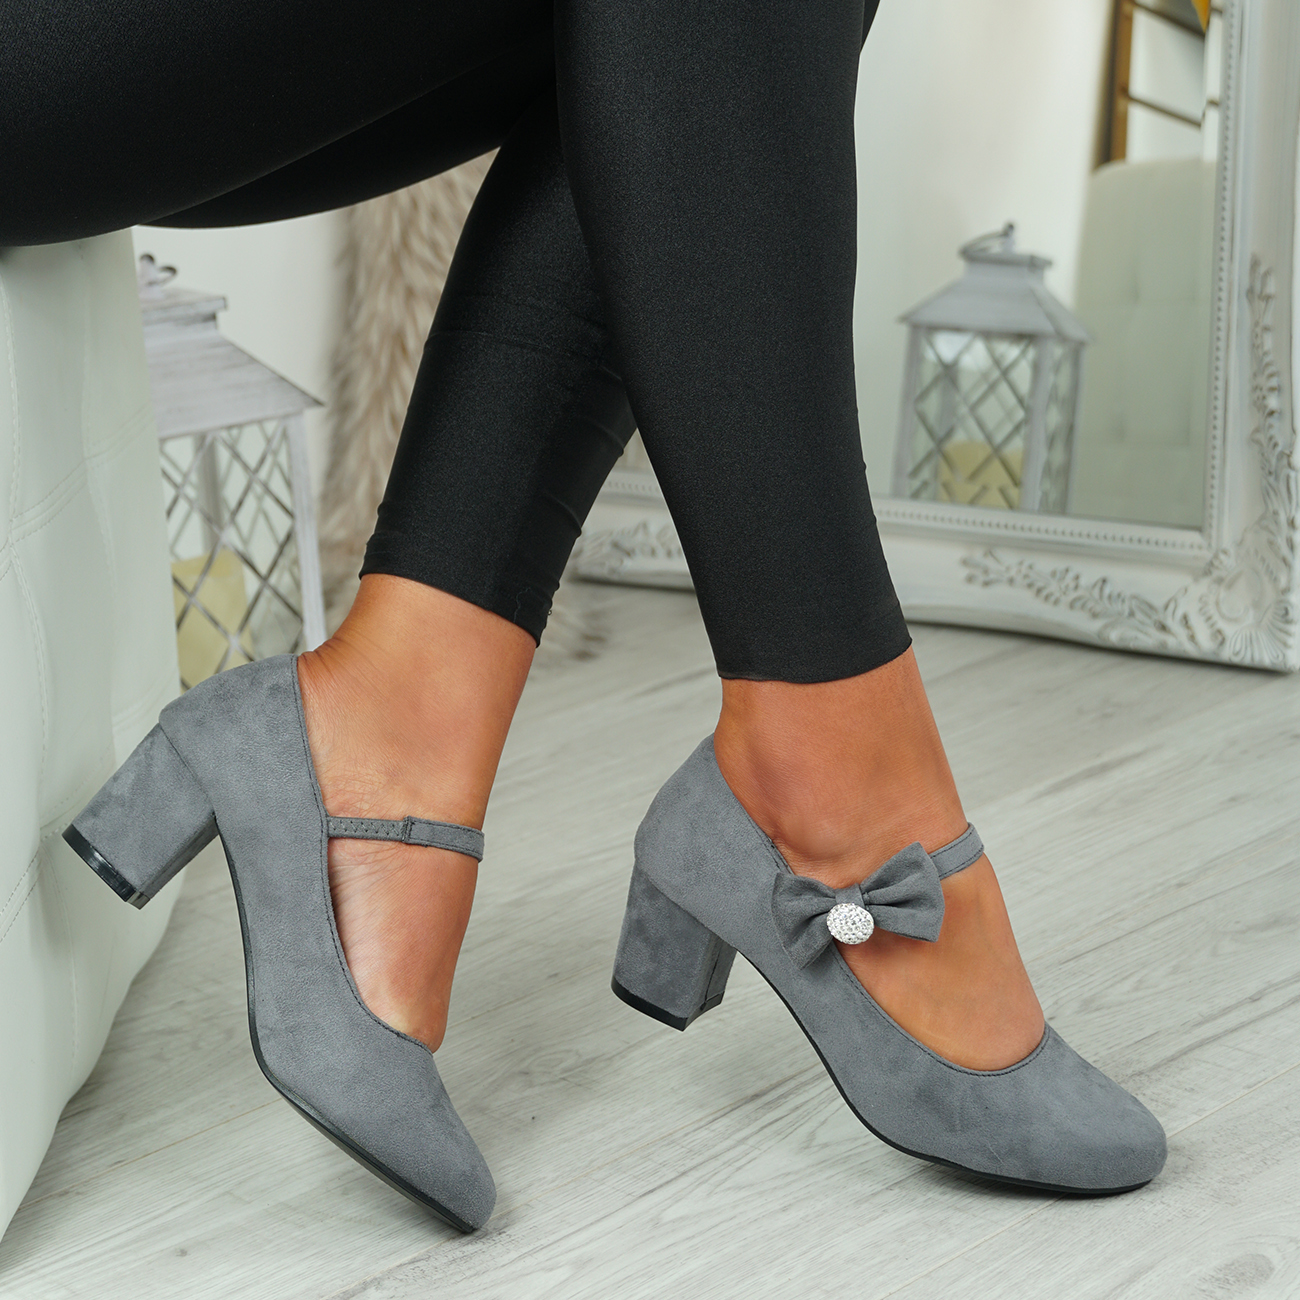 NEW-WOMENS-BLOCK-HEEL-PUMPS-BOW-BUCKLE-STRAP-ROUNDED-TOE-CASUAL-SHOES-SIZE thumbnail 20